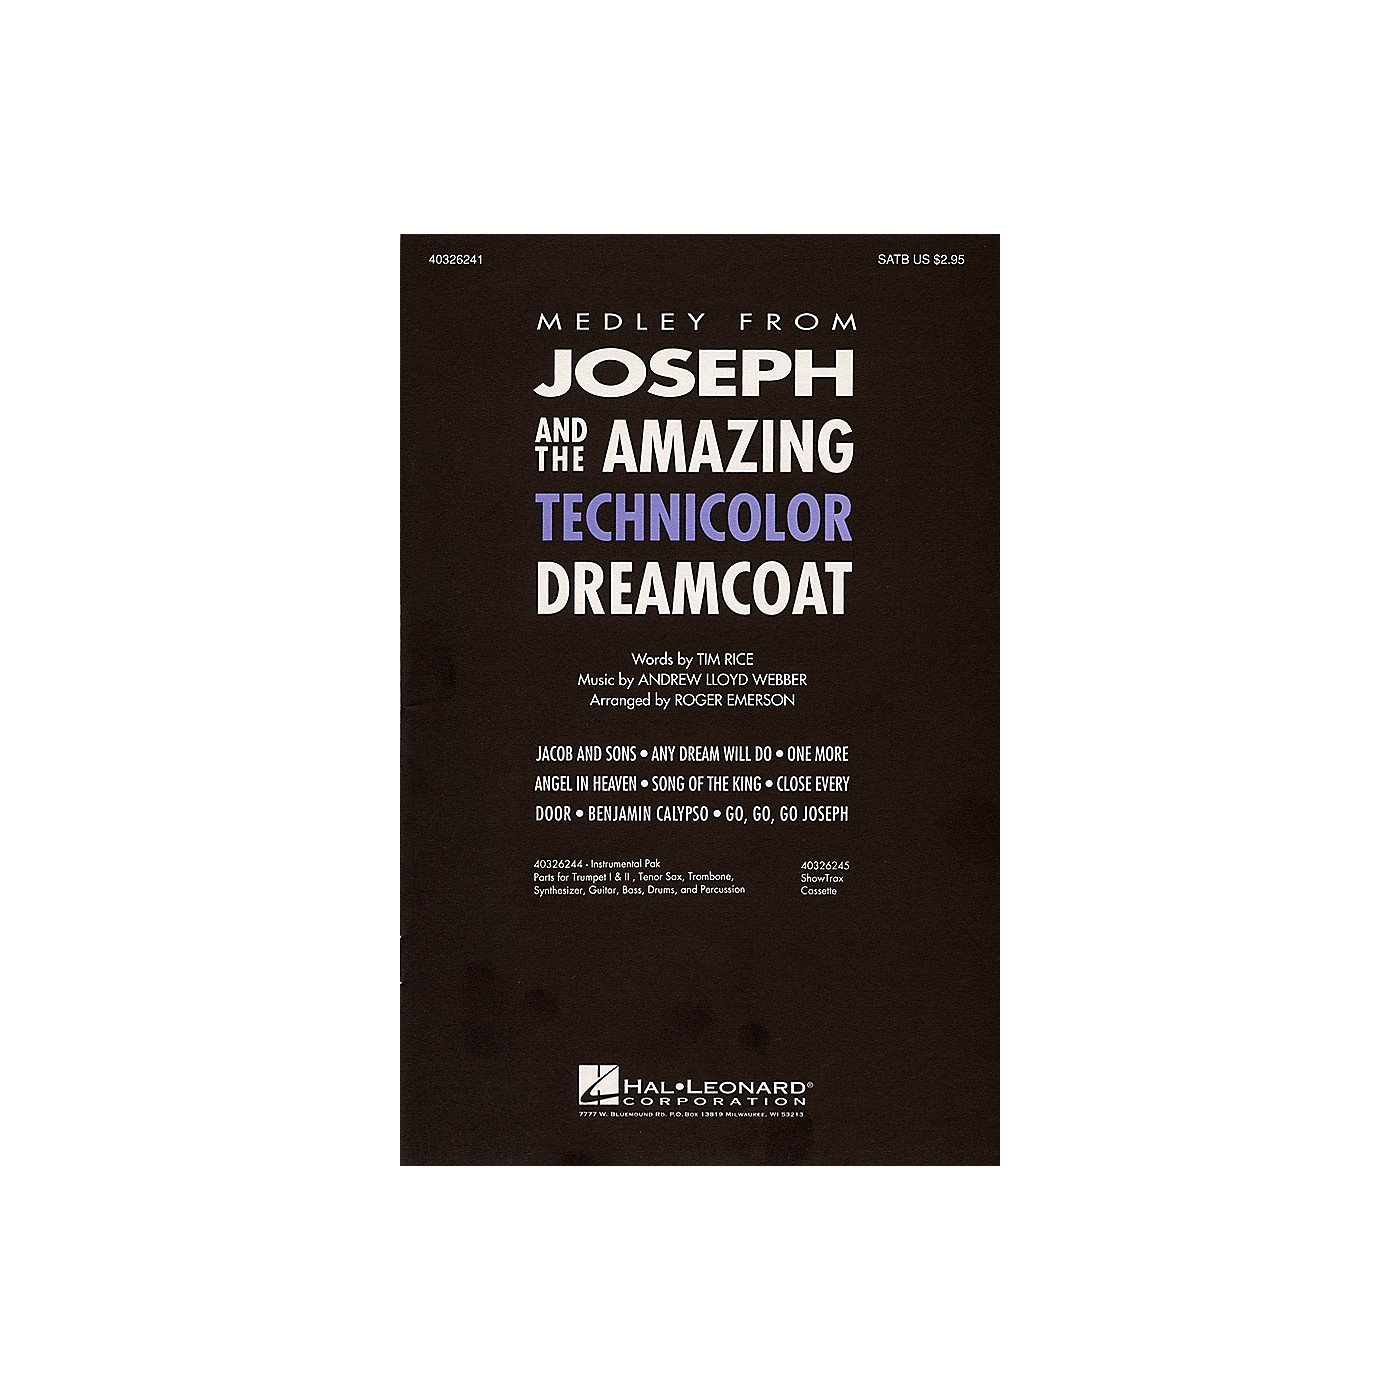 Hal Leonard Joseph and the Amazing Technicolor Dreamcoat (Medley) SATB arranged by Roger Emerson thumbnail